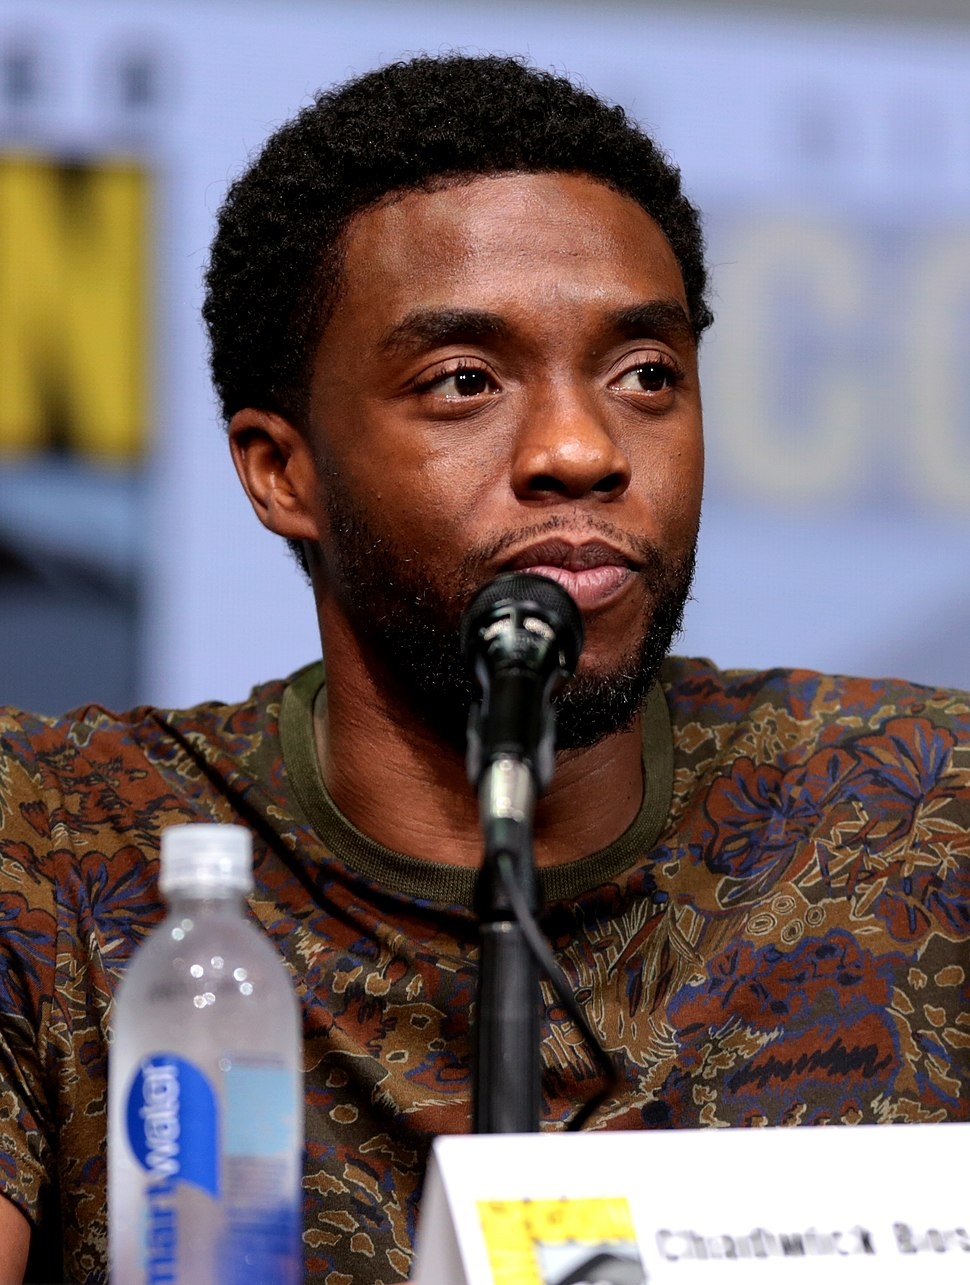 Chadwick Boseman by Gage Skidmore July 2017 (cropped)